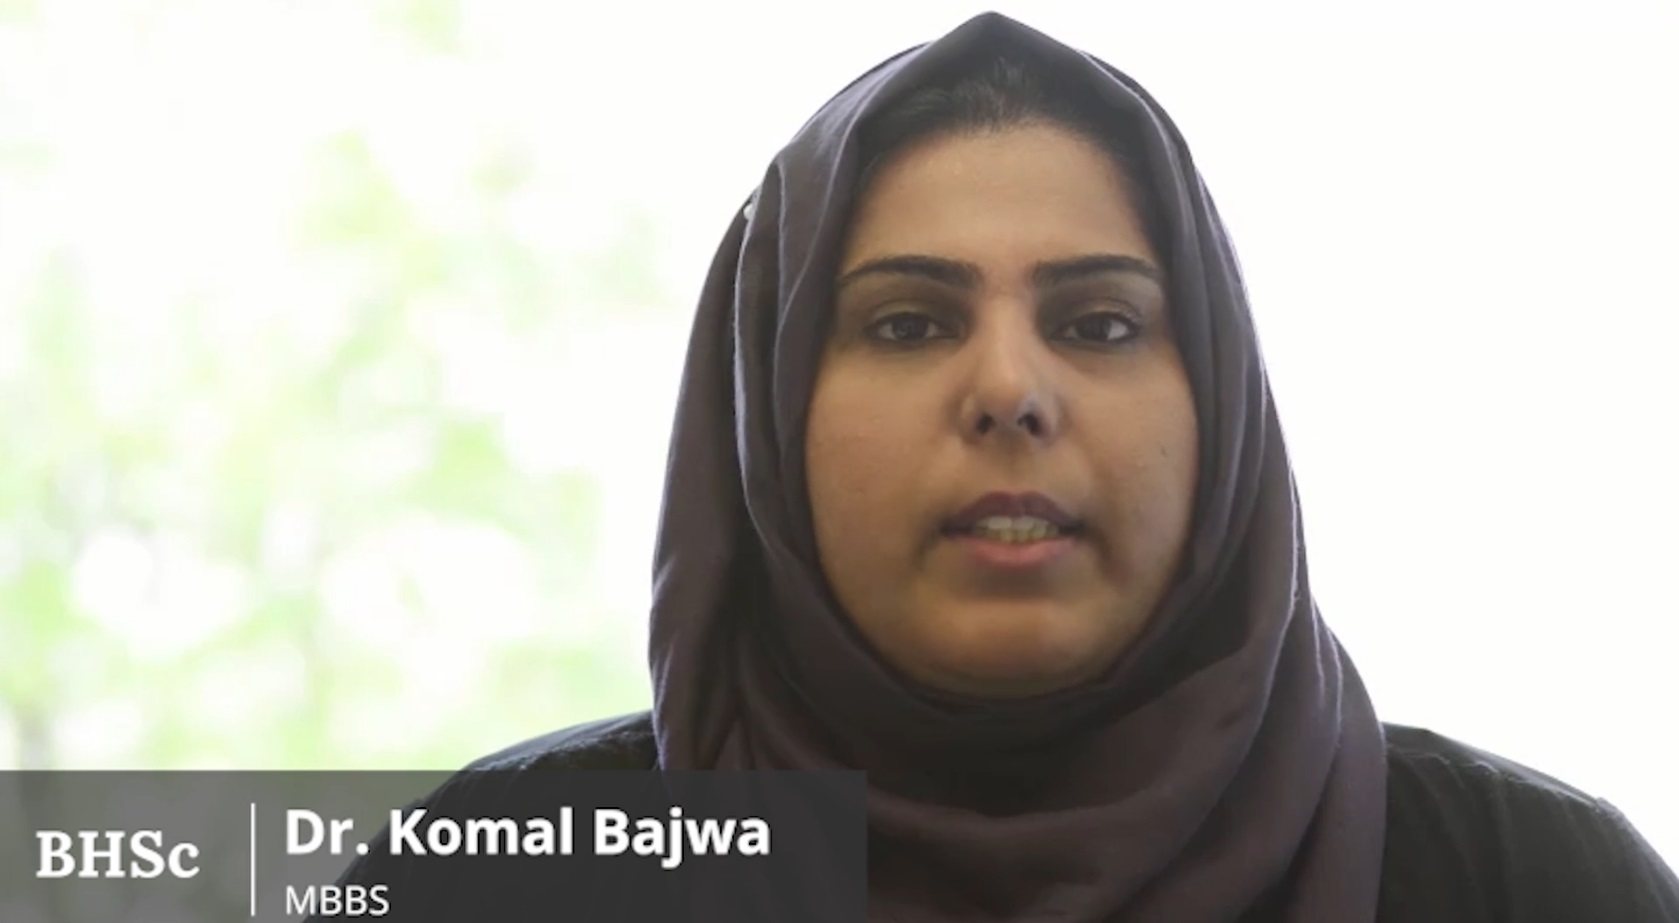 Video Title: Dr. Komal Bajwa